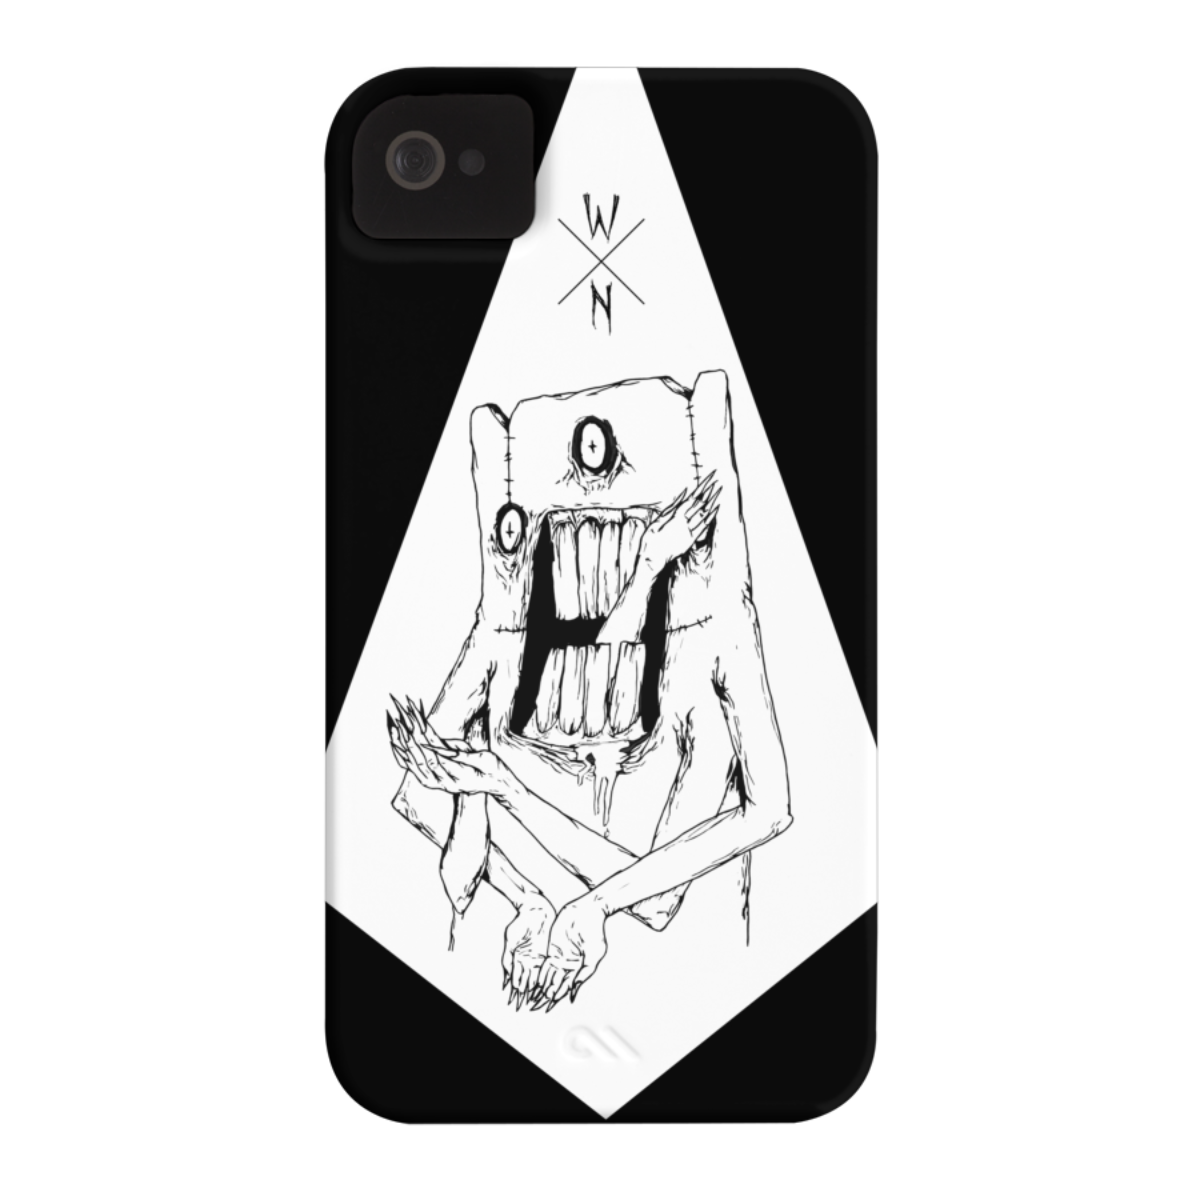 Helping Hands Phone Case Buy the Black Helping Hands phone case designed by mooncurse. Enjoy this protective phone case for iPhone 4/4s/5/5s/5c/6/6 plus, as well as iPod Touch or Galaxy S4/S5. This Black phone case is featured in abstract, art styles, cartoon, dark art, geometric, street art, surreal categories. Shop DesignByHumans.com for the largest selection of creative graphic tees, tank tops, sweatshirts, phone cases, and art prints.